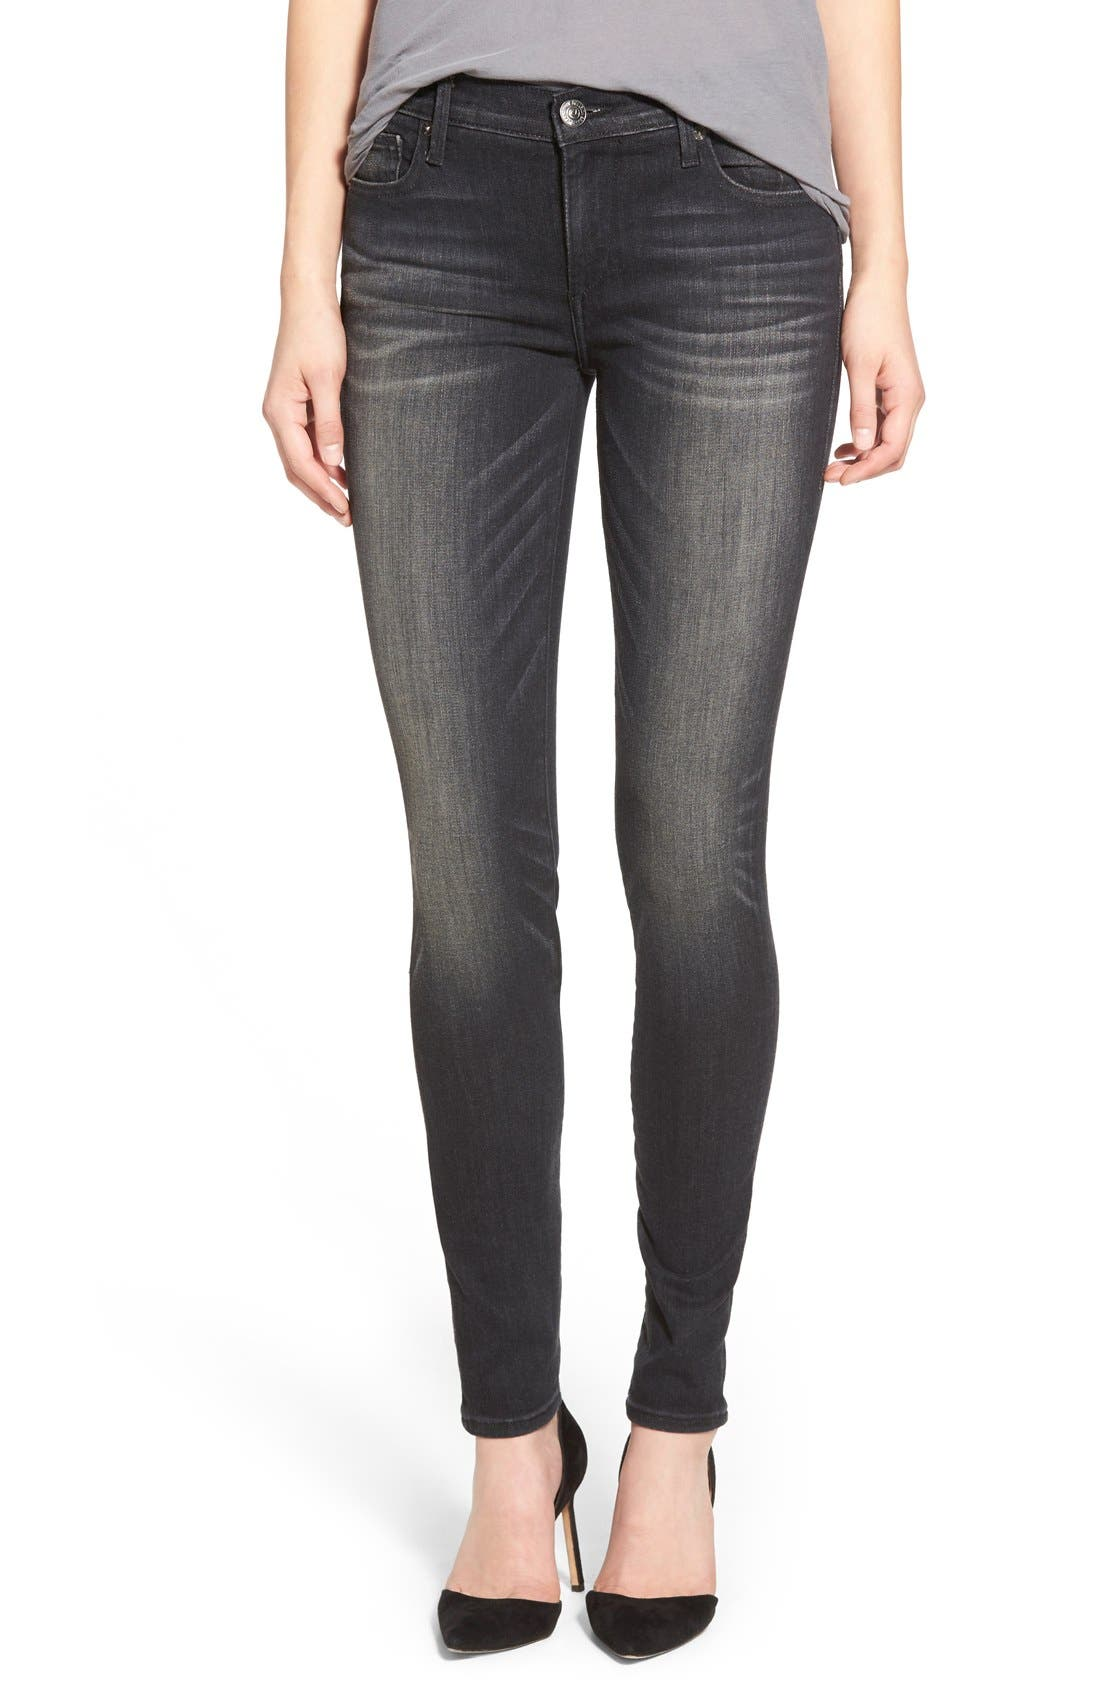 Alternate Image 1 Selected - True Religion Brand Jeans 'Halle' Skinny Jeans (Authentic Black)